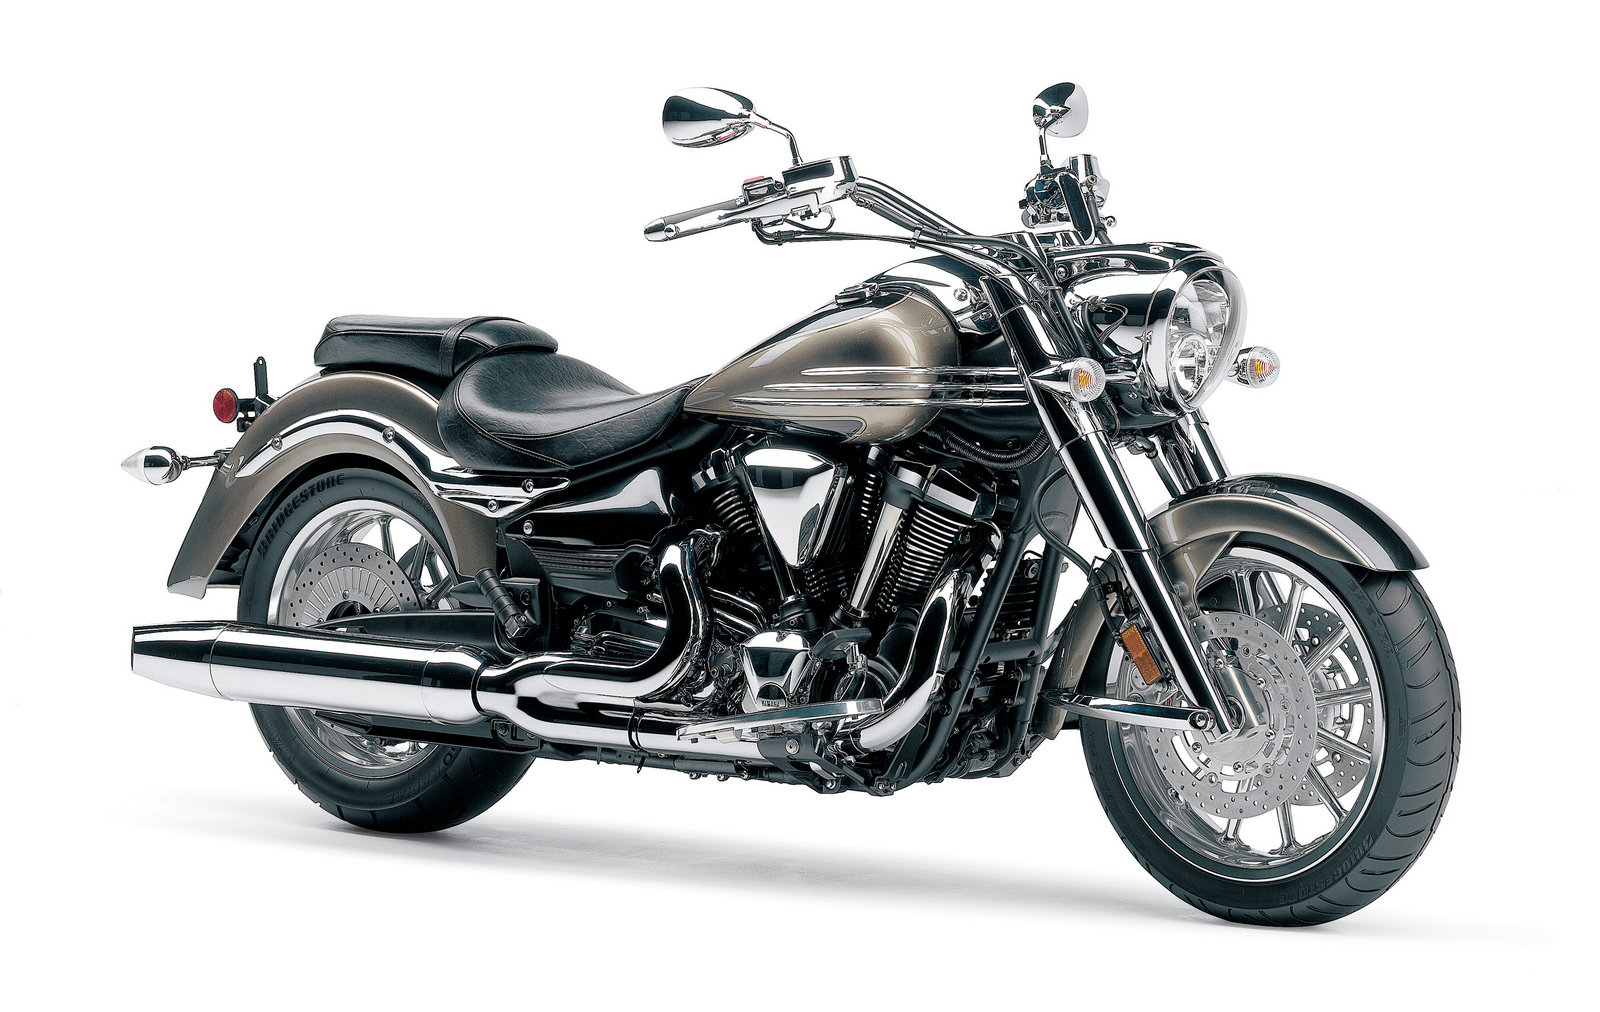 2006 yamaha roadliner s picture 46321 motorcycle for 2006 yamaha stratoliner review